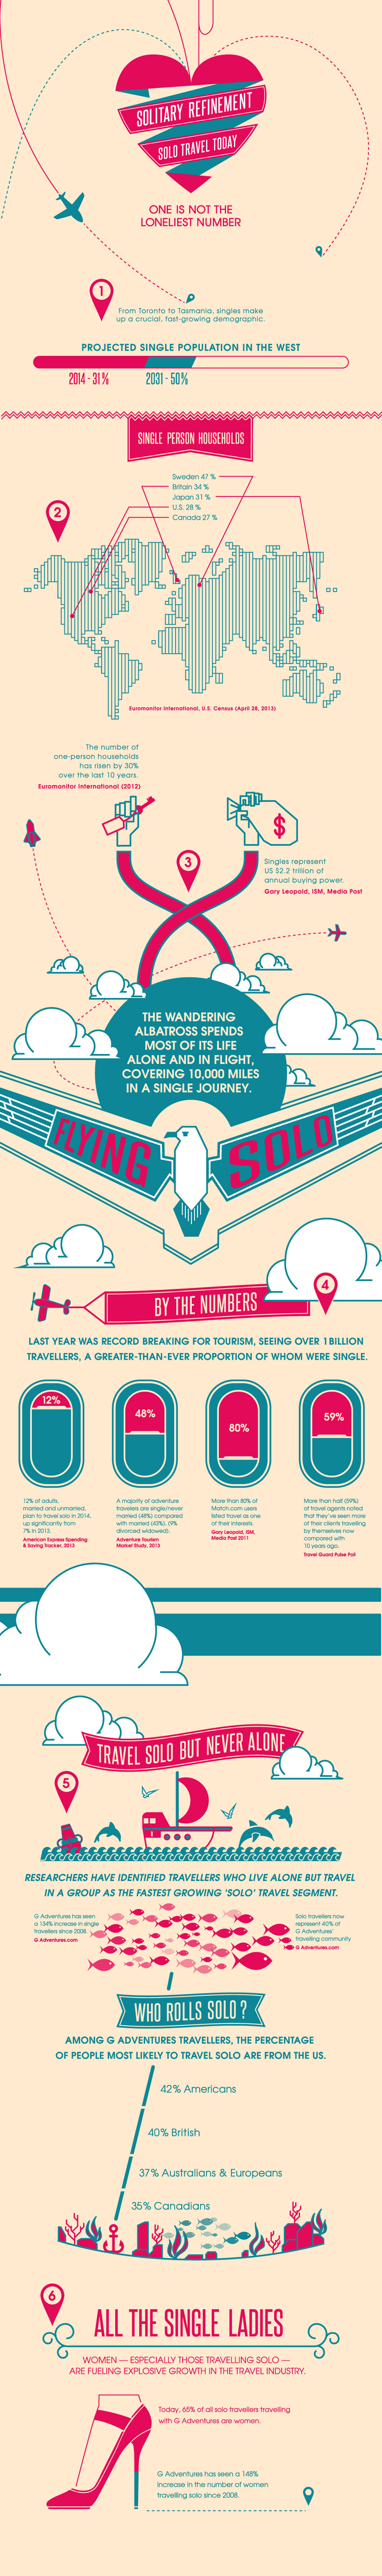 G-Solo-Travel-Infographic